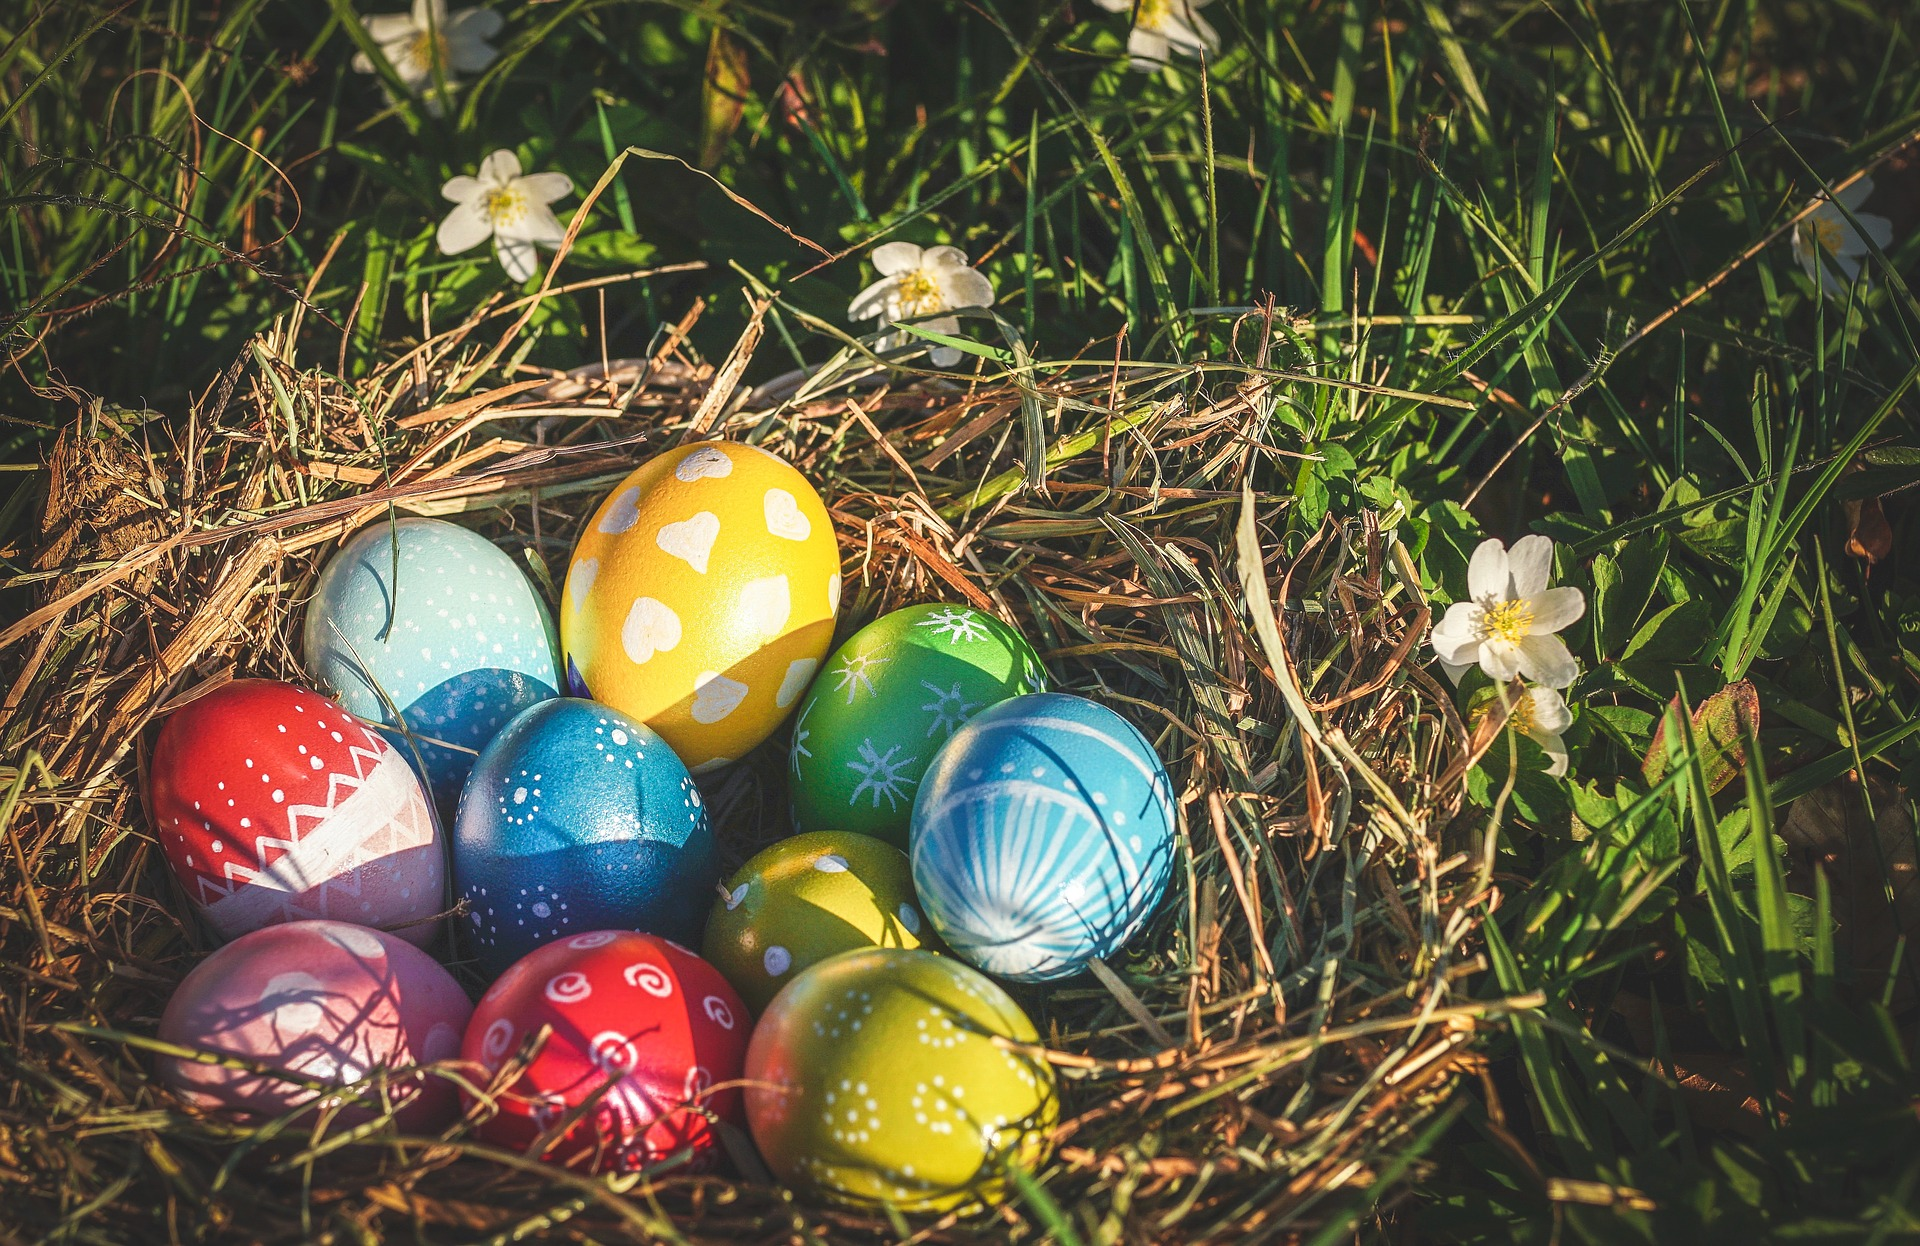 painted easter eggs in a nest outdoors